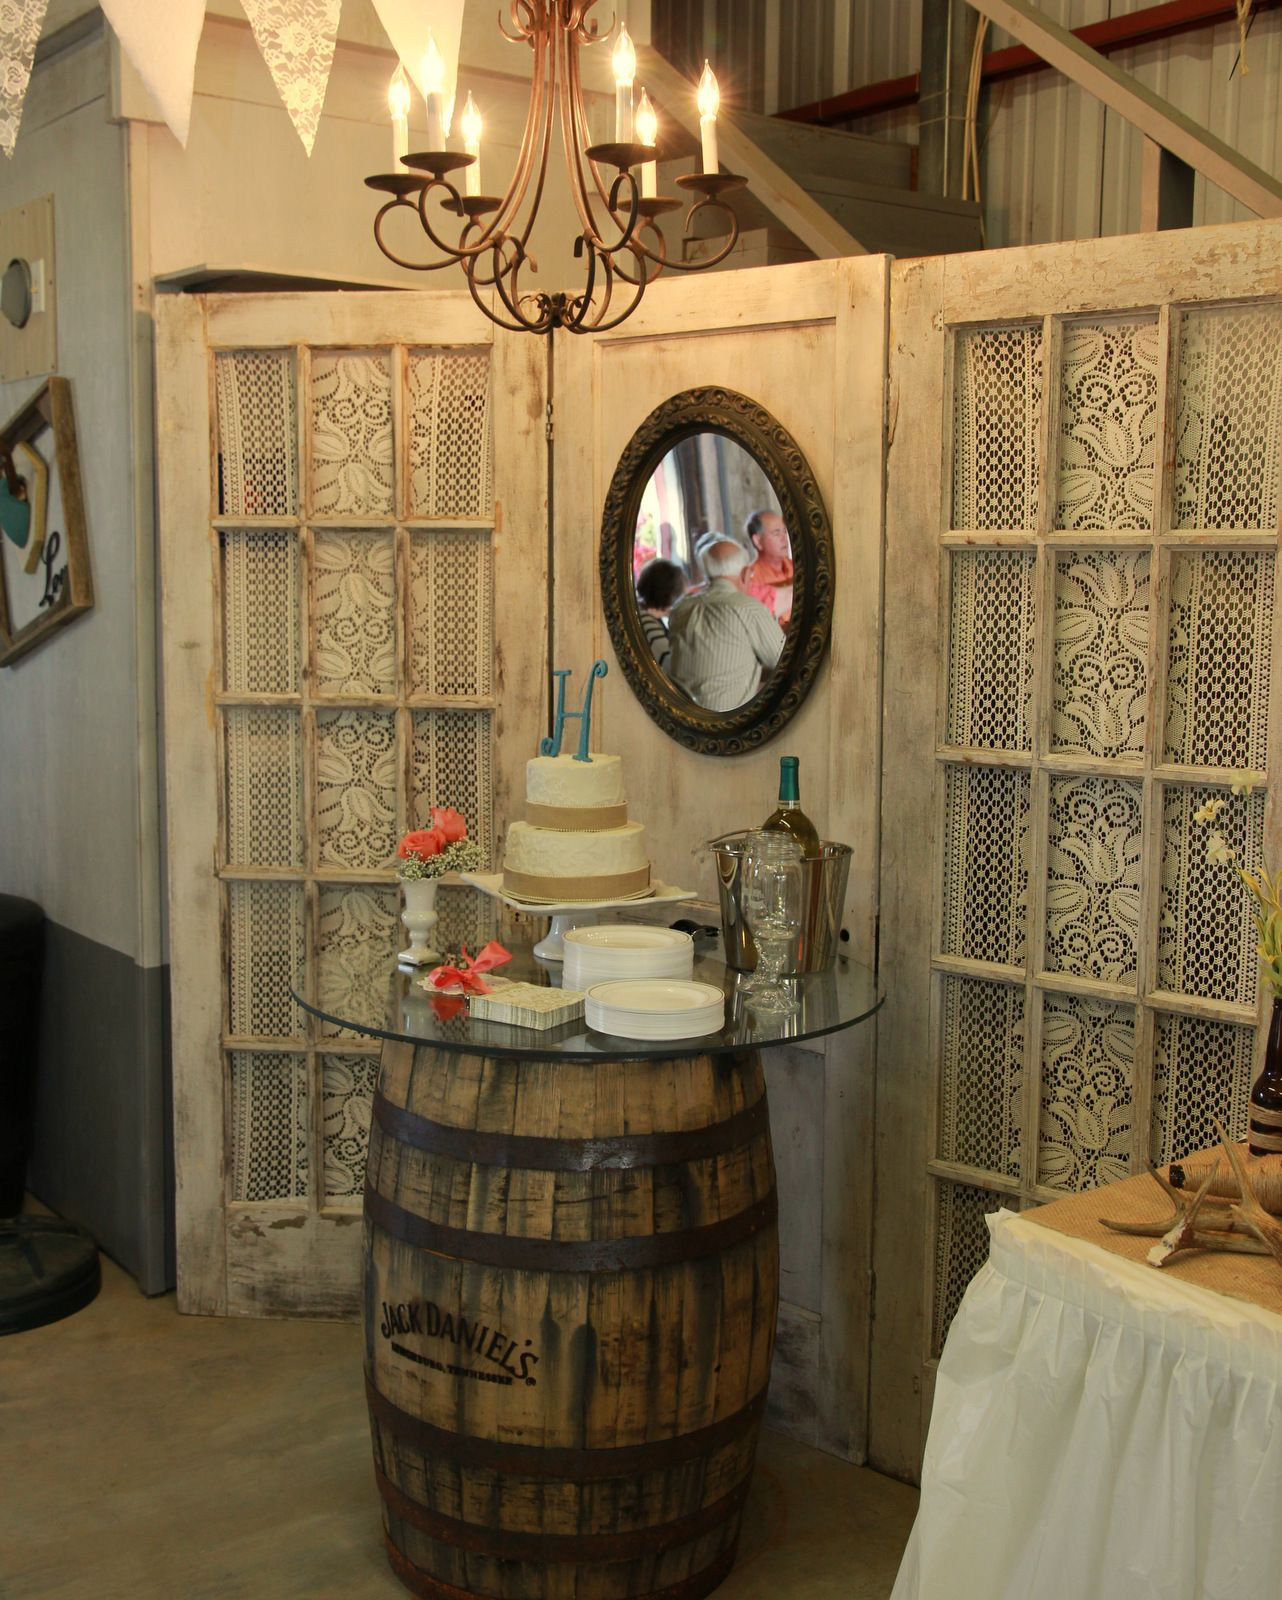 Wedding Cake Backdrop: Wedding Cake On A Whiskey Barrel! What More Can You Ask